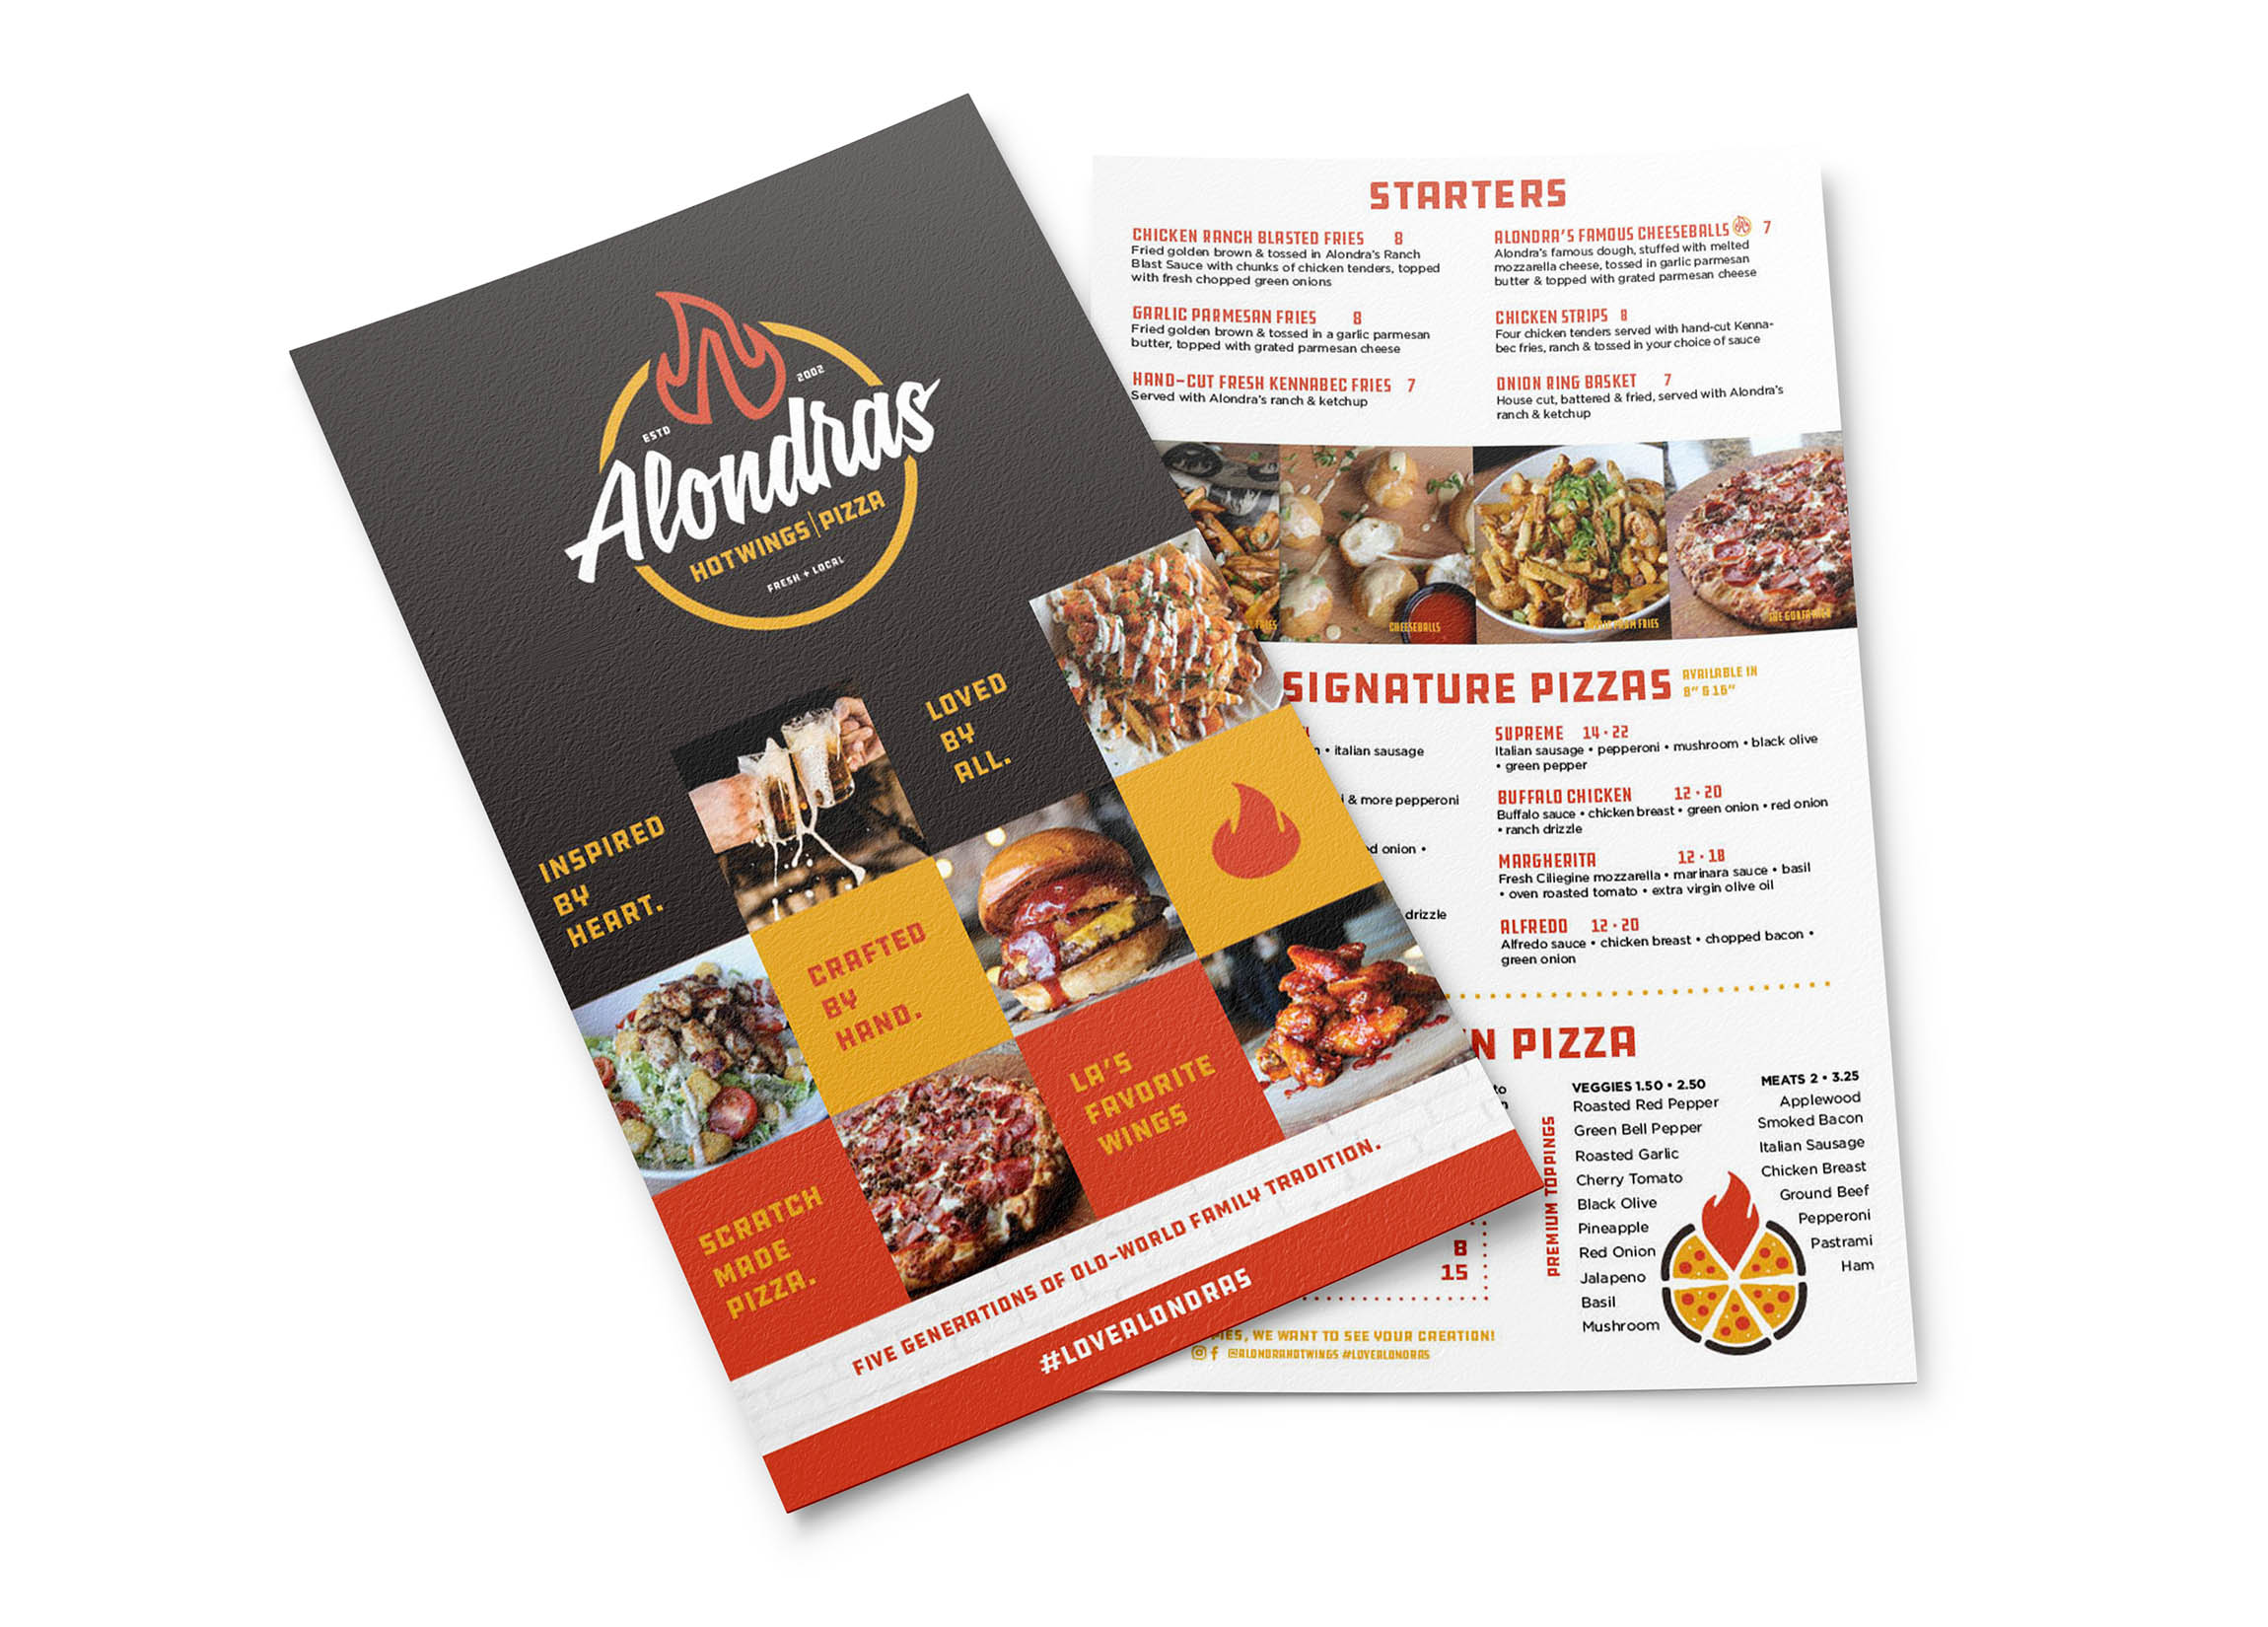 ALONDRAS 2020 MENU